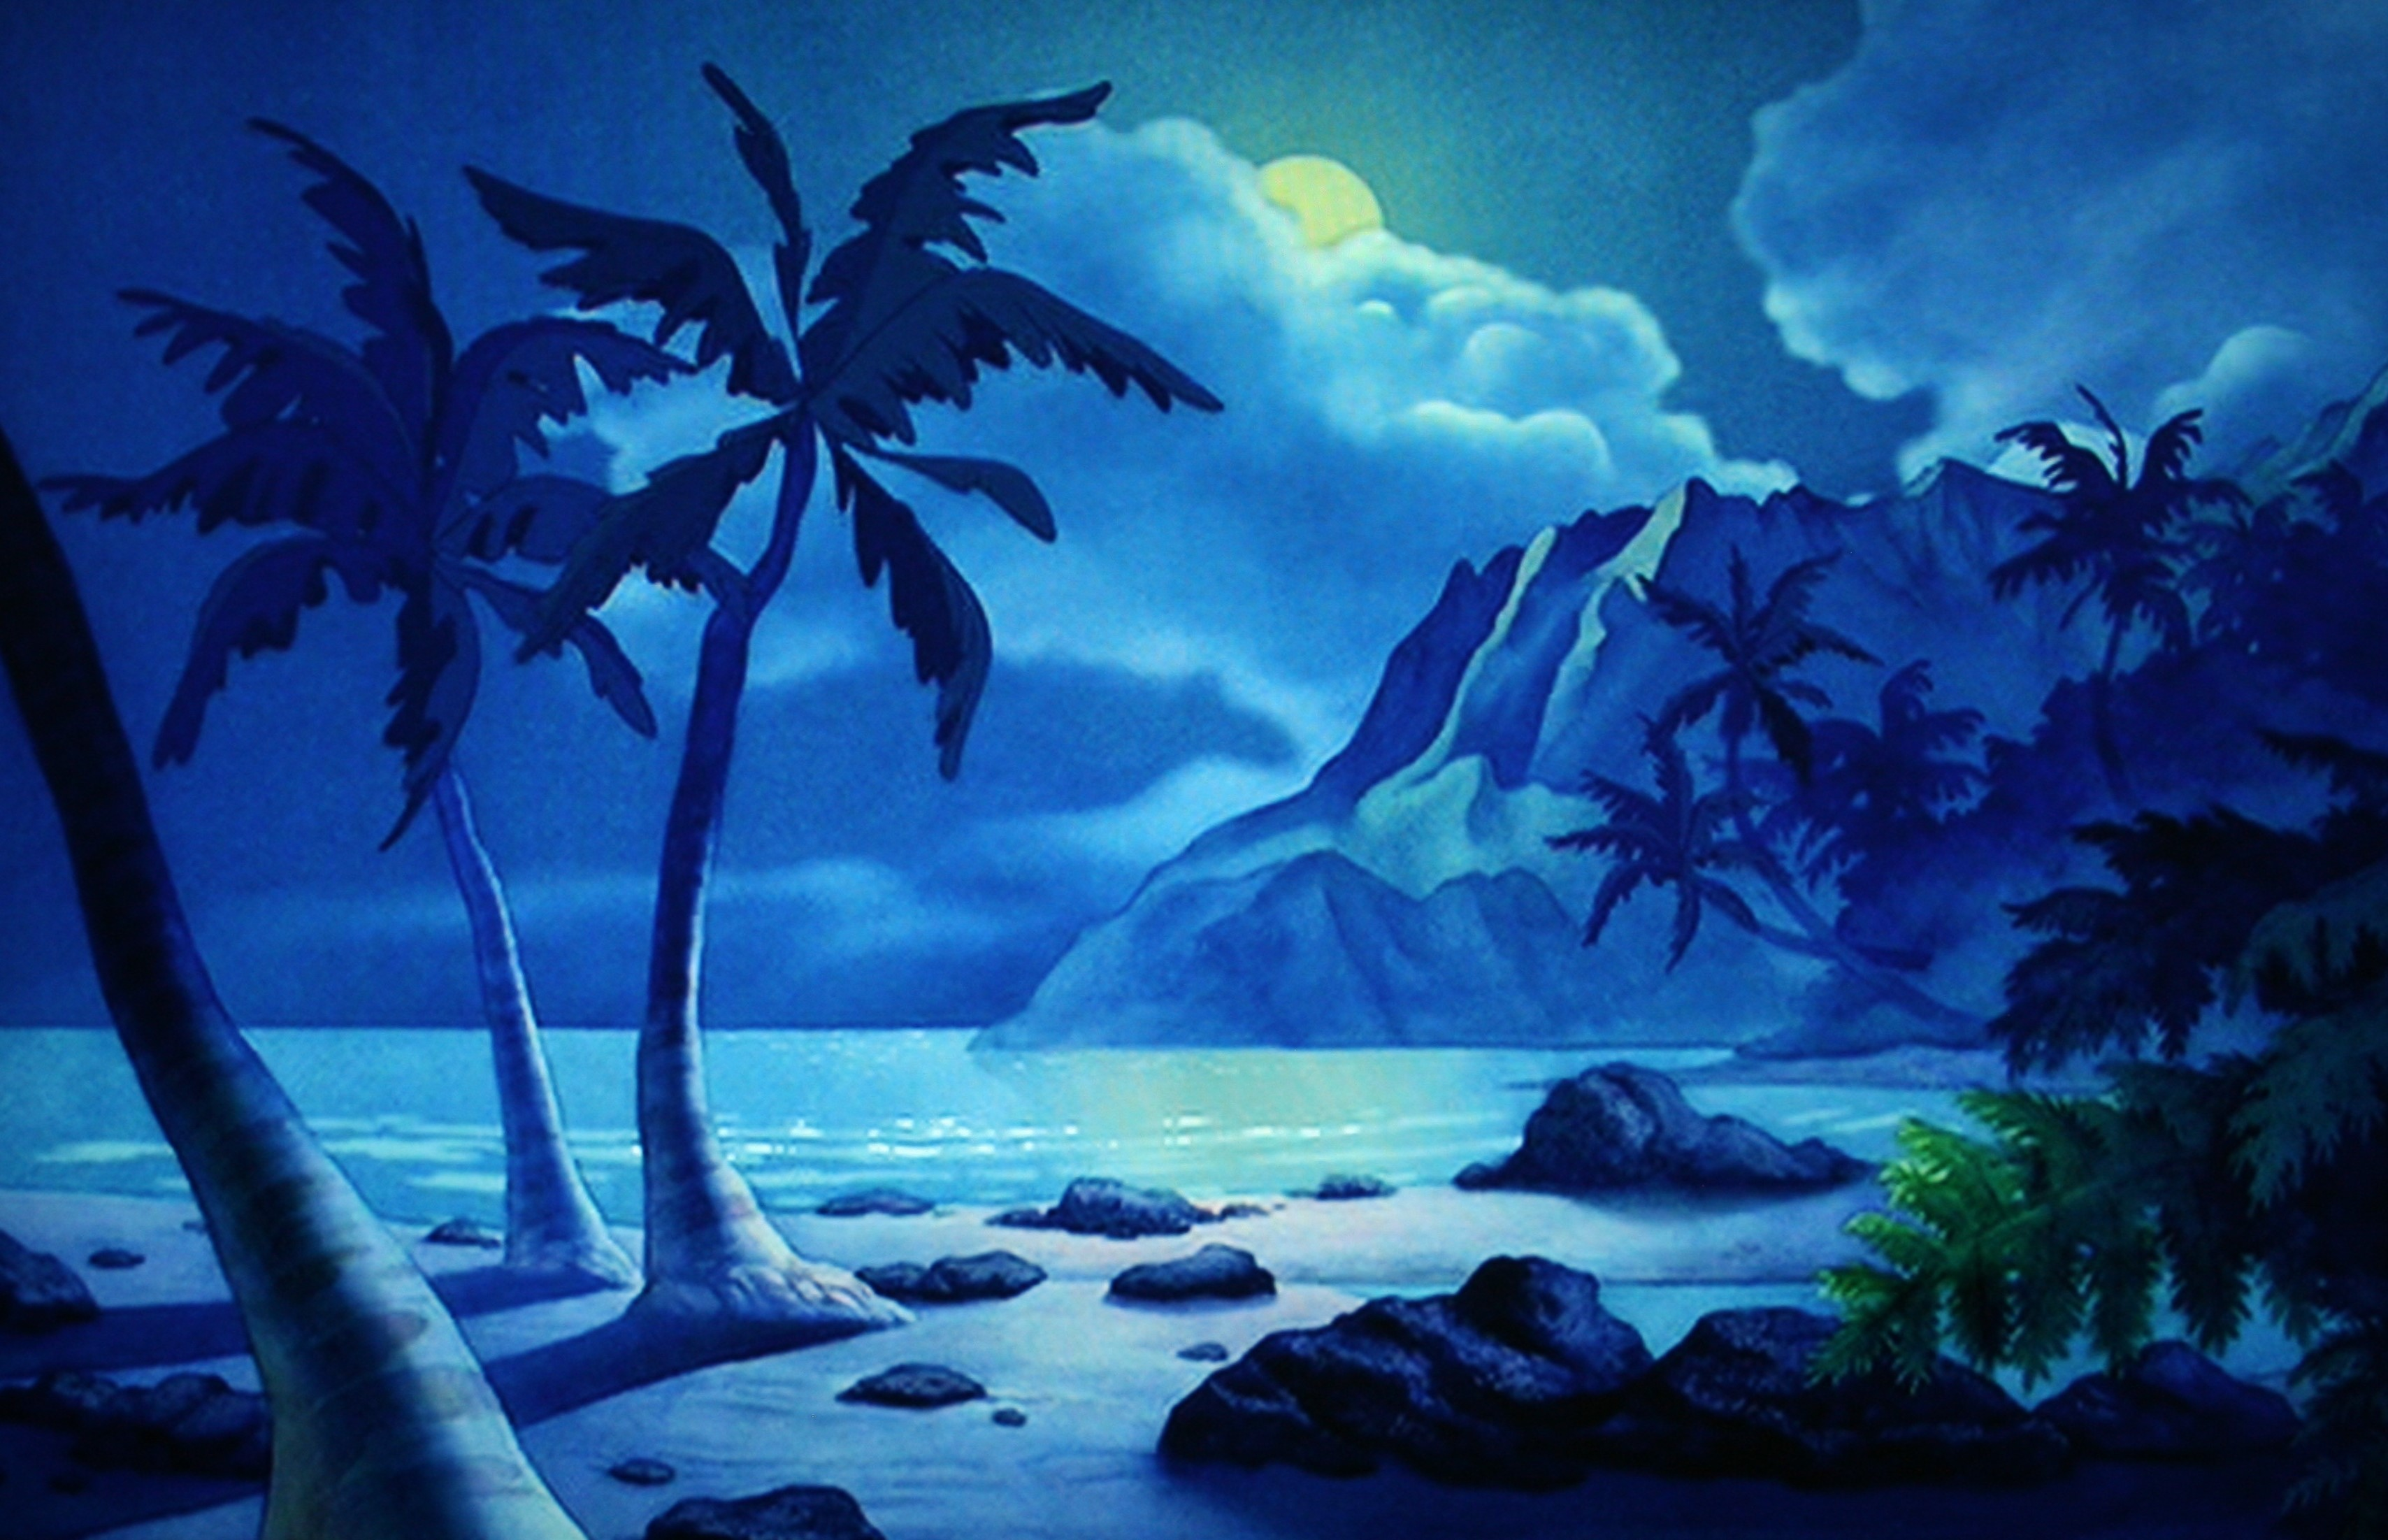 Wallpaper Stage Beach of Lilo and Stitch